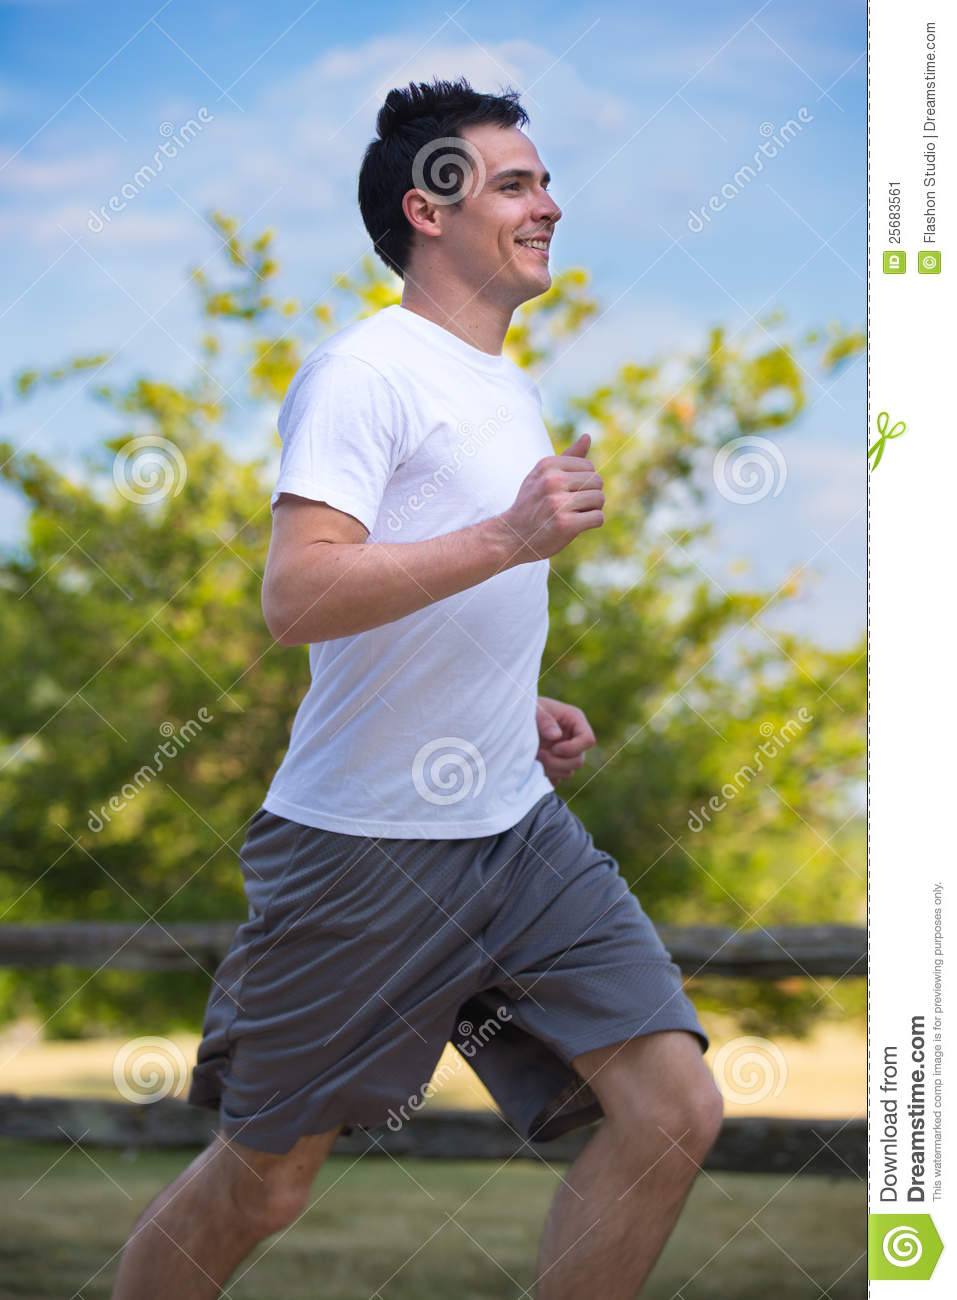 young-healthy-man-jogging-woods-25683561.jpg